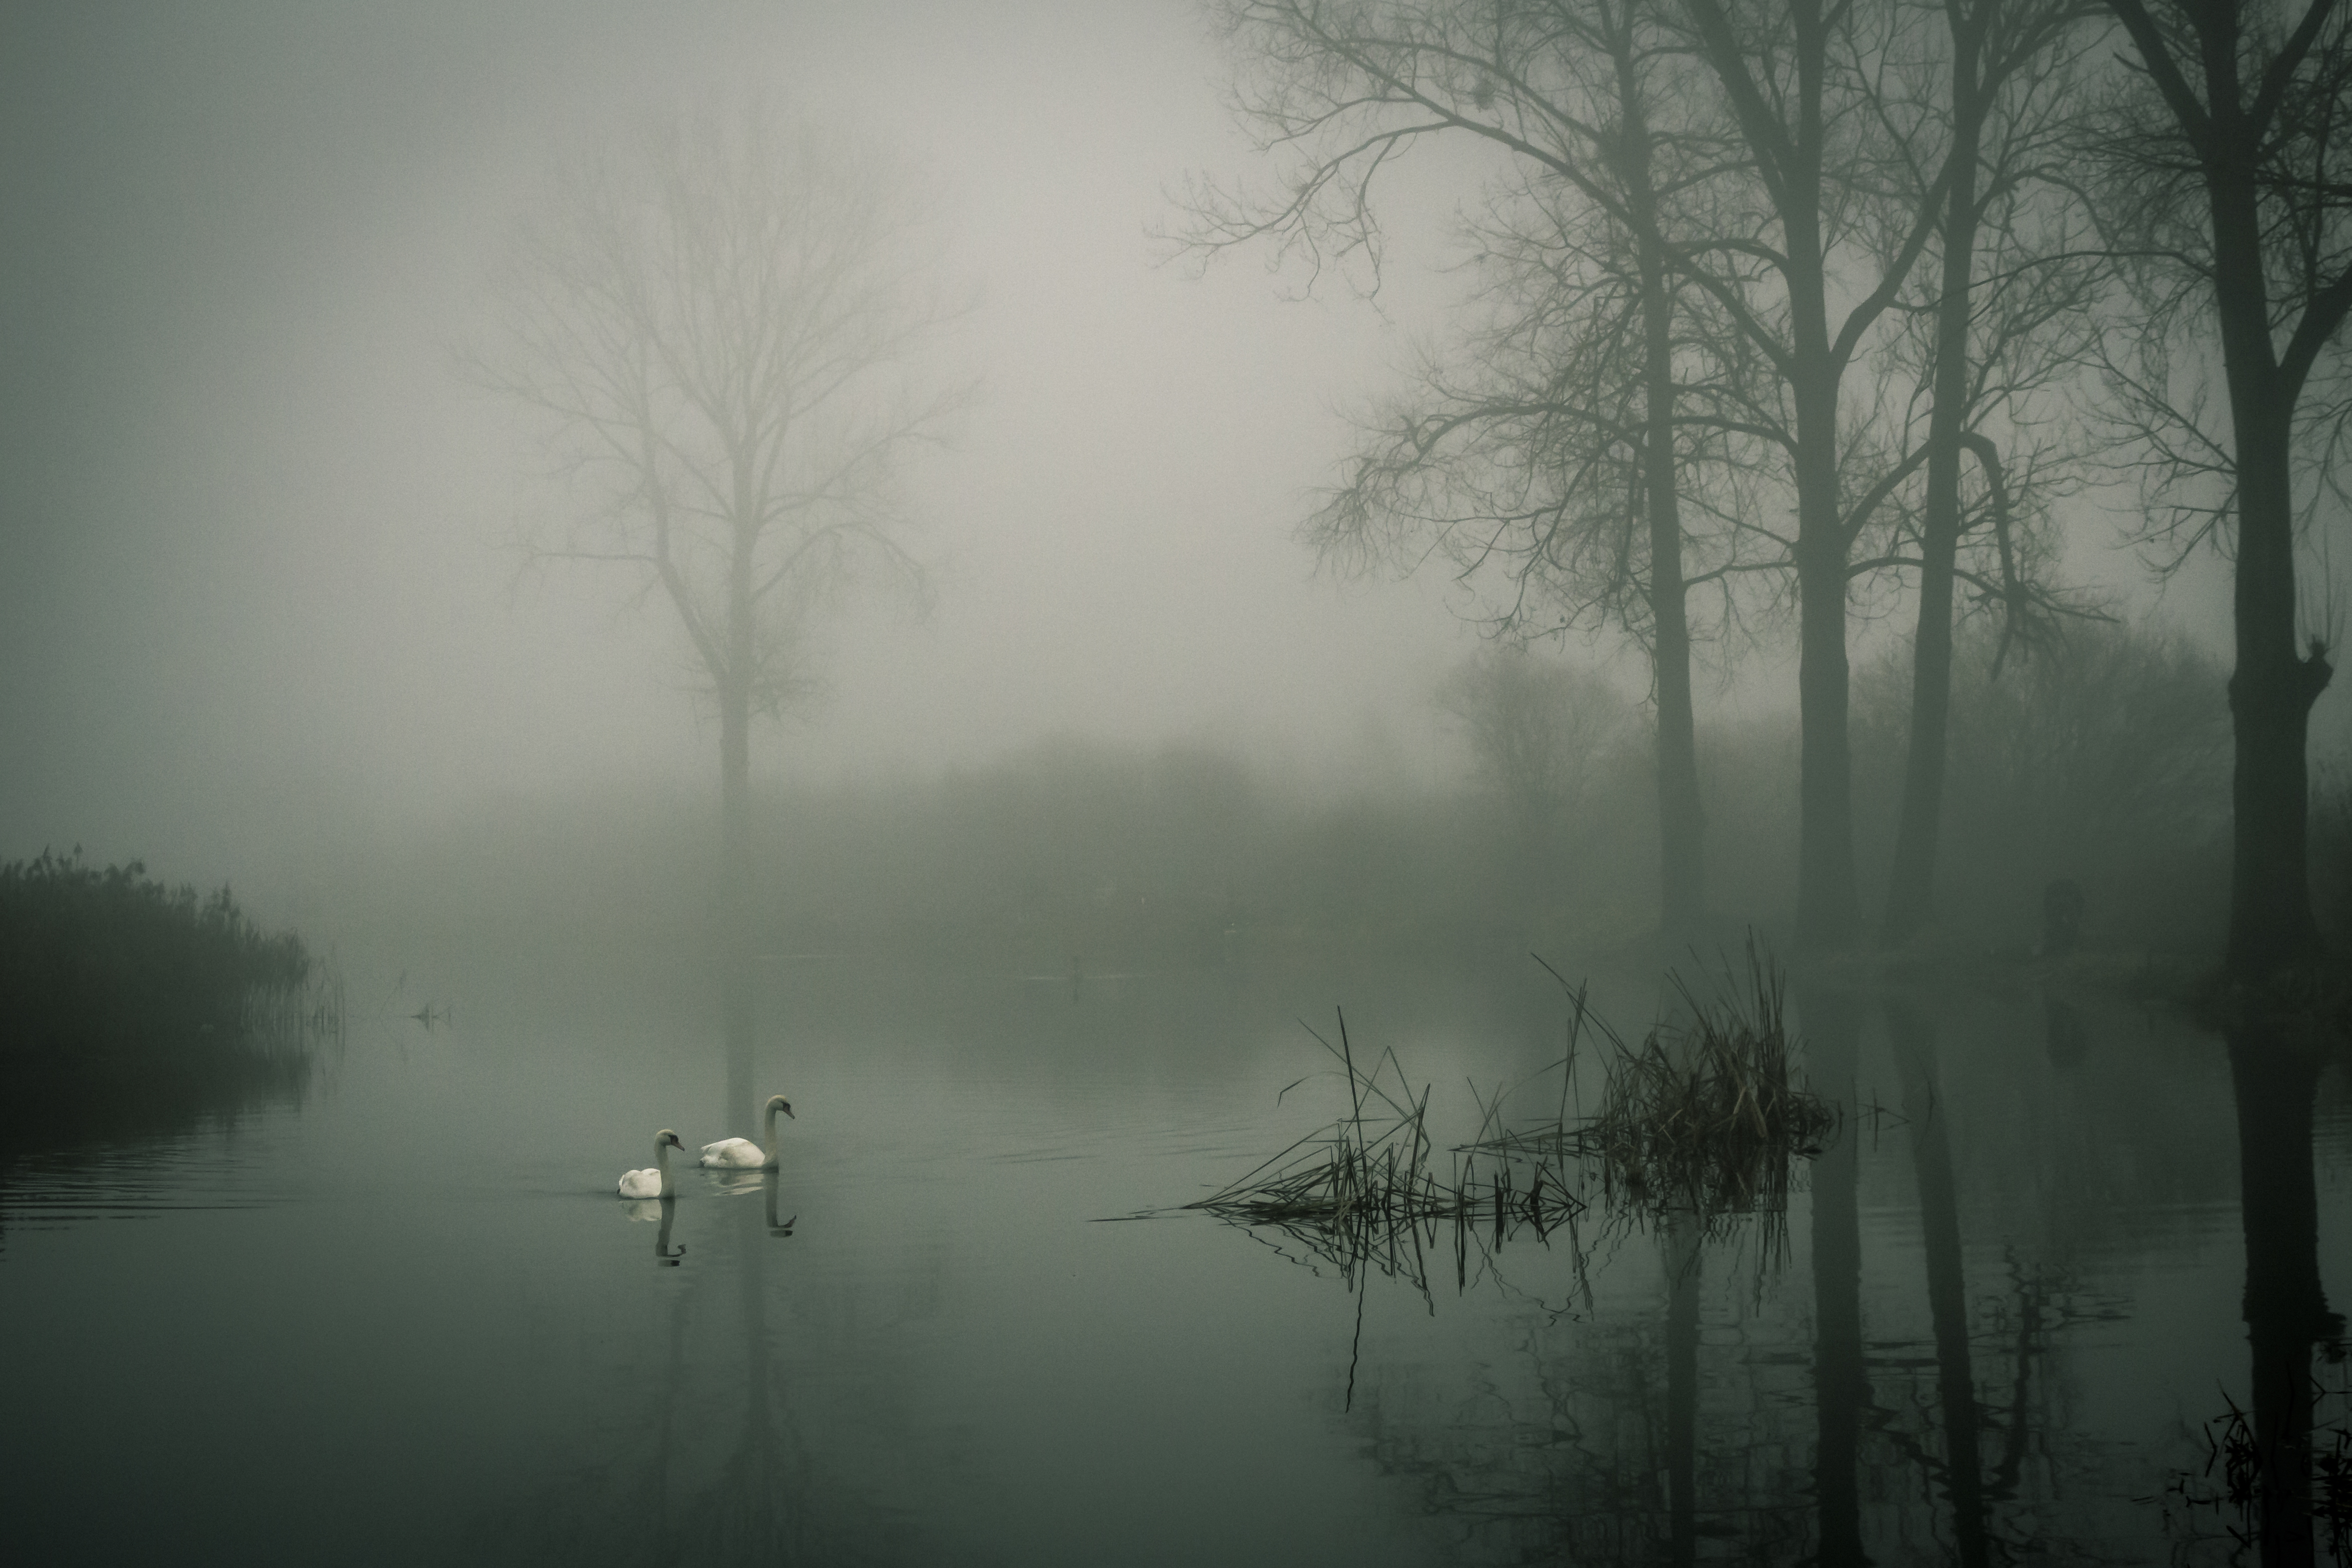 Minimalist Wallpaper Fall Photo Of Two White Ducks On Water During Fog 183 Free Stock